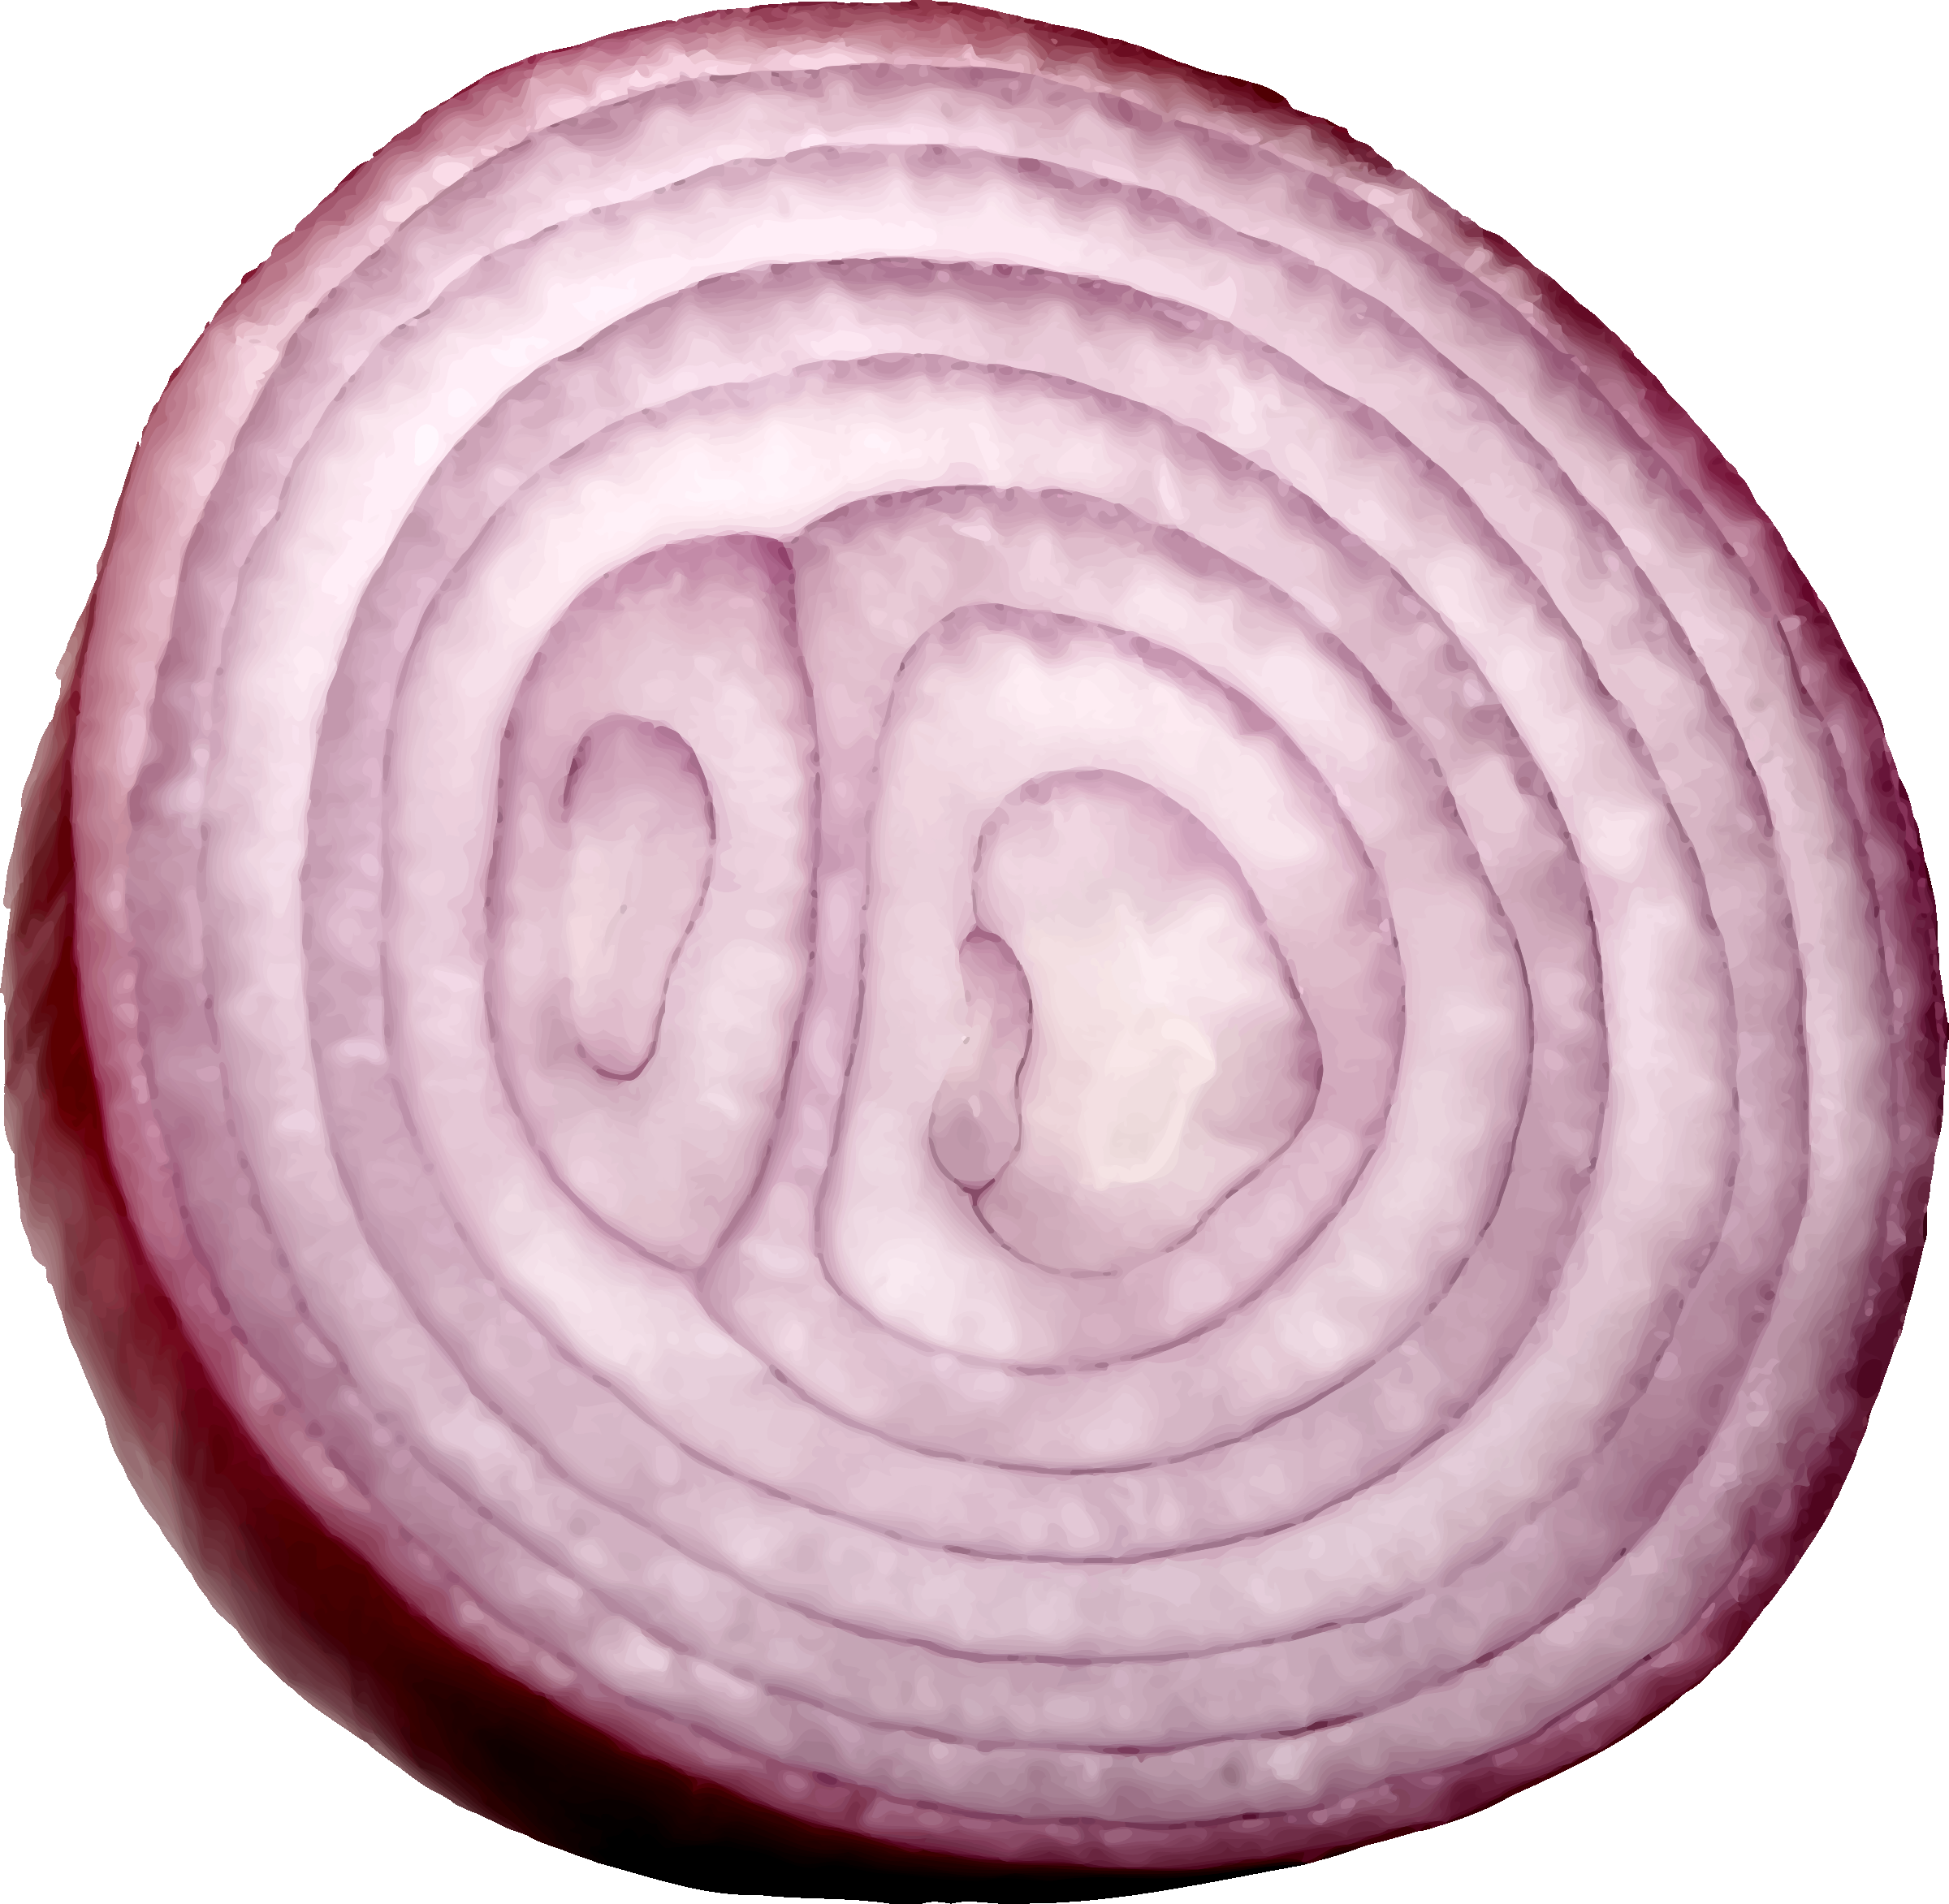 Slice Onion Png image #38744